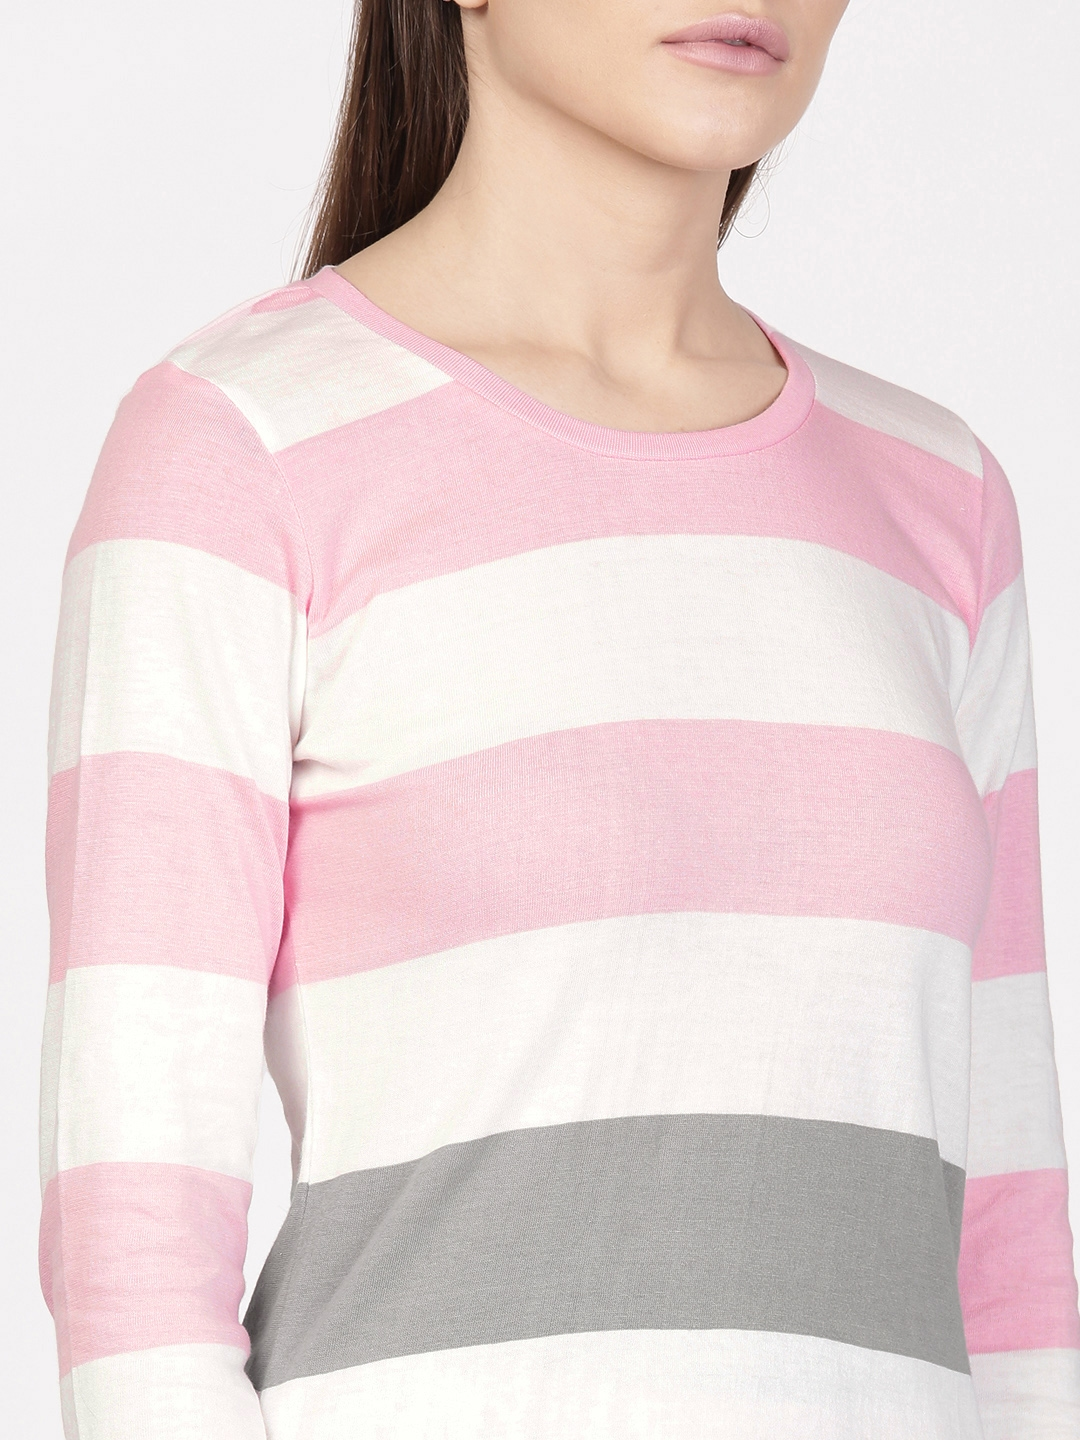 94908246d18 Buy Ether Women White & Pink Striped Long Sleeve Round Neck T Shirt ...